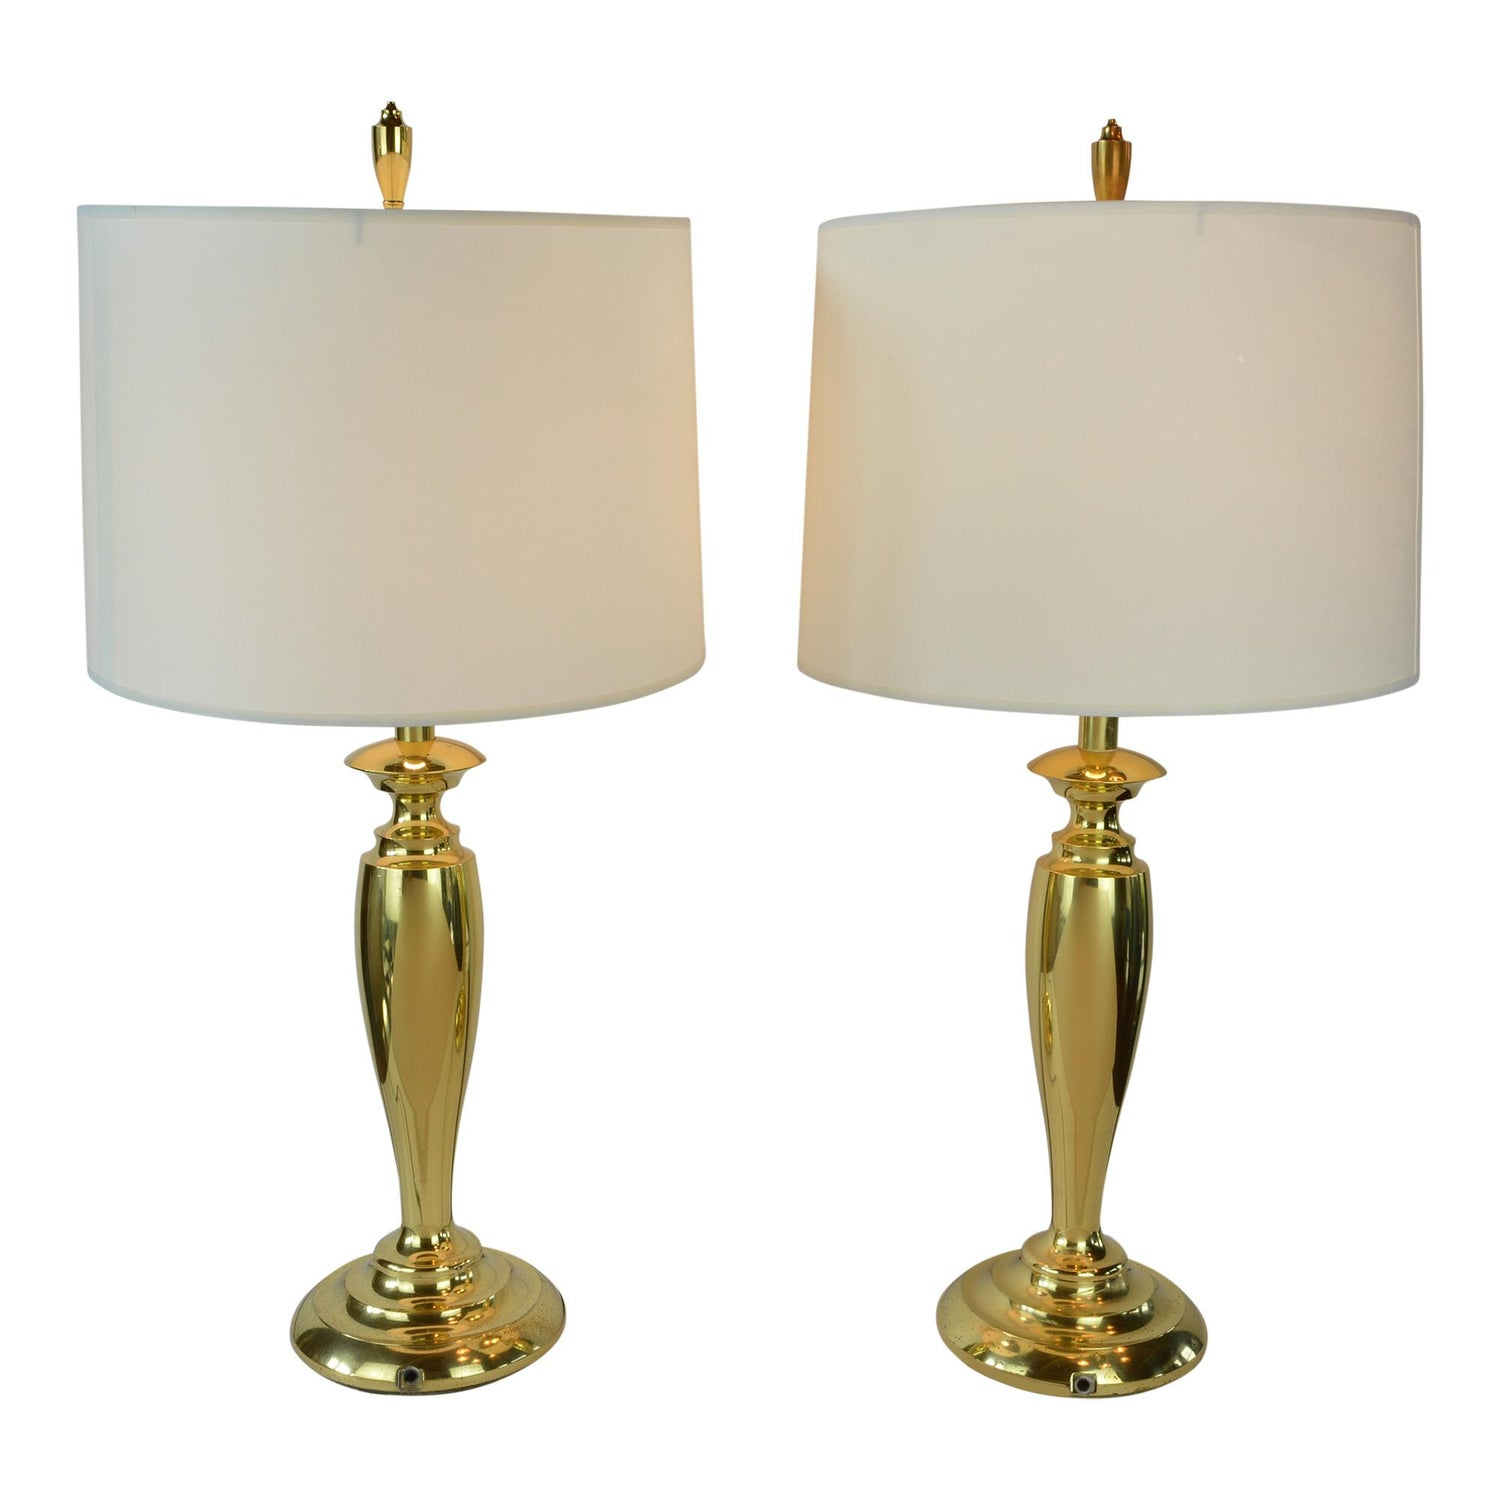 Pair Of Br Stiffel Mid Century Modern Table Lamps With Drum Shades